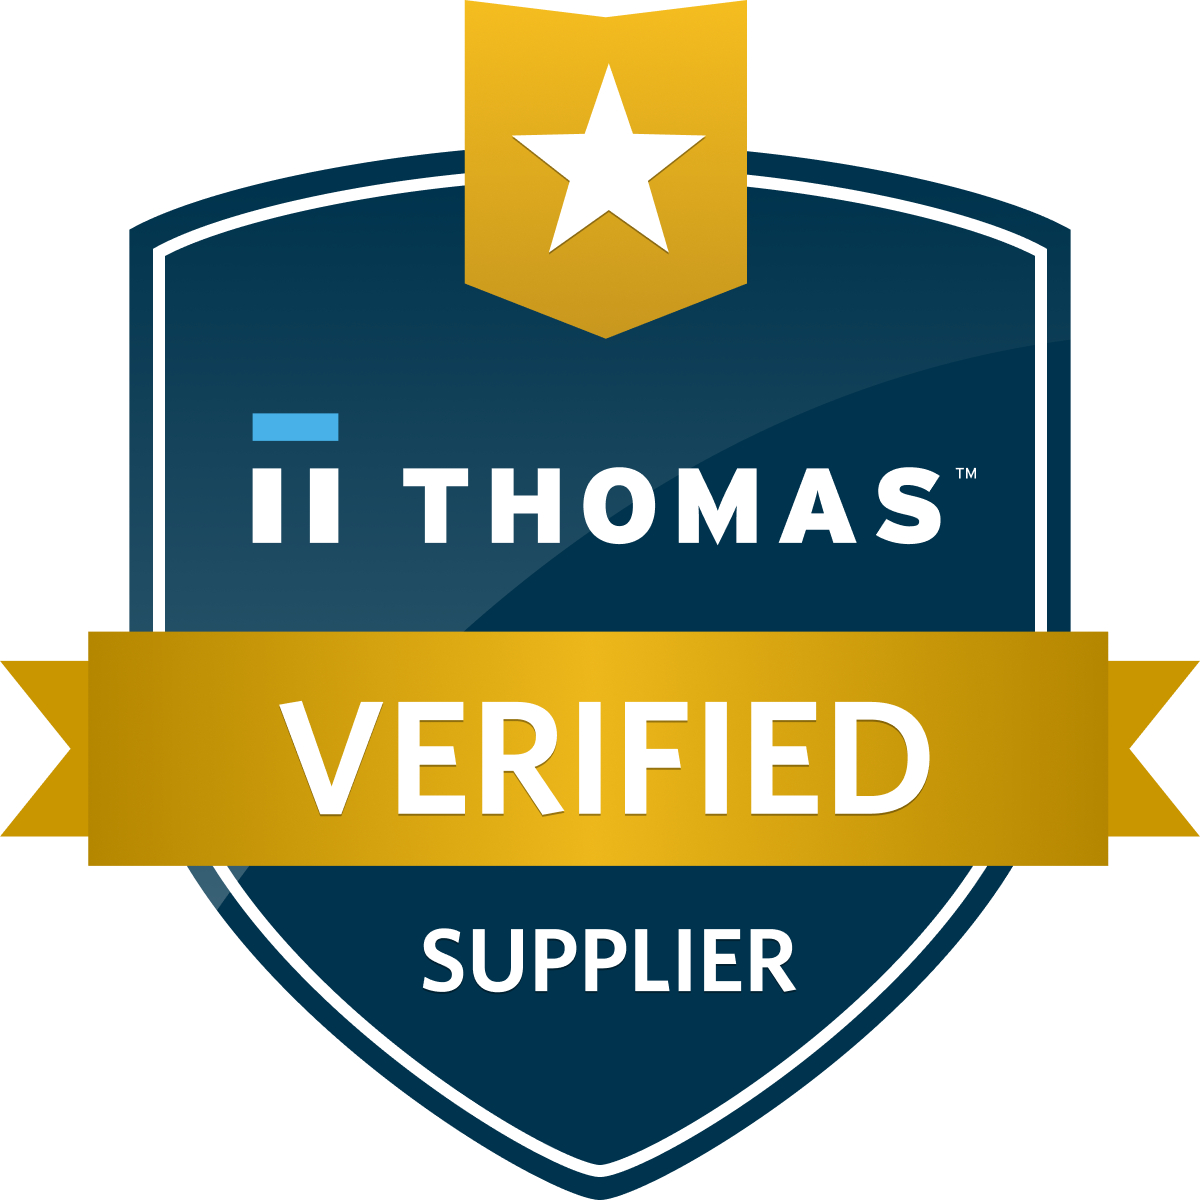 thomasnet supplier